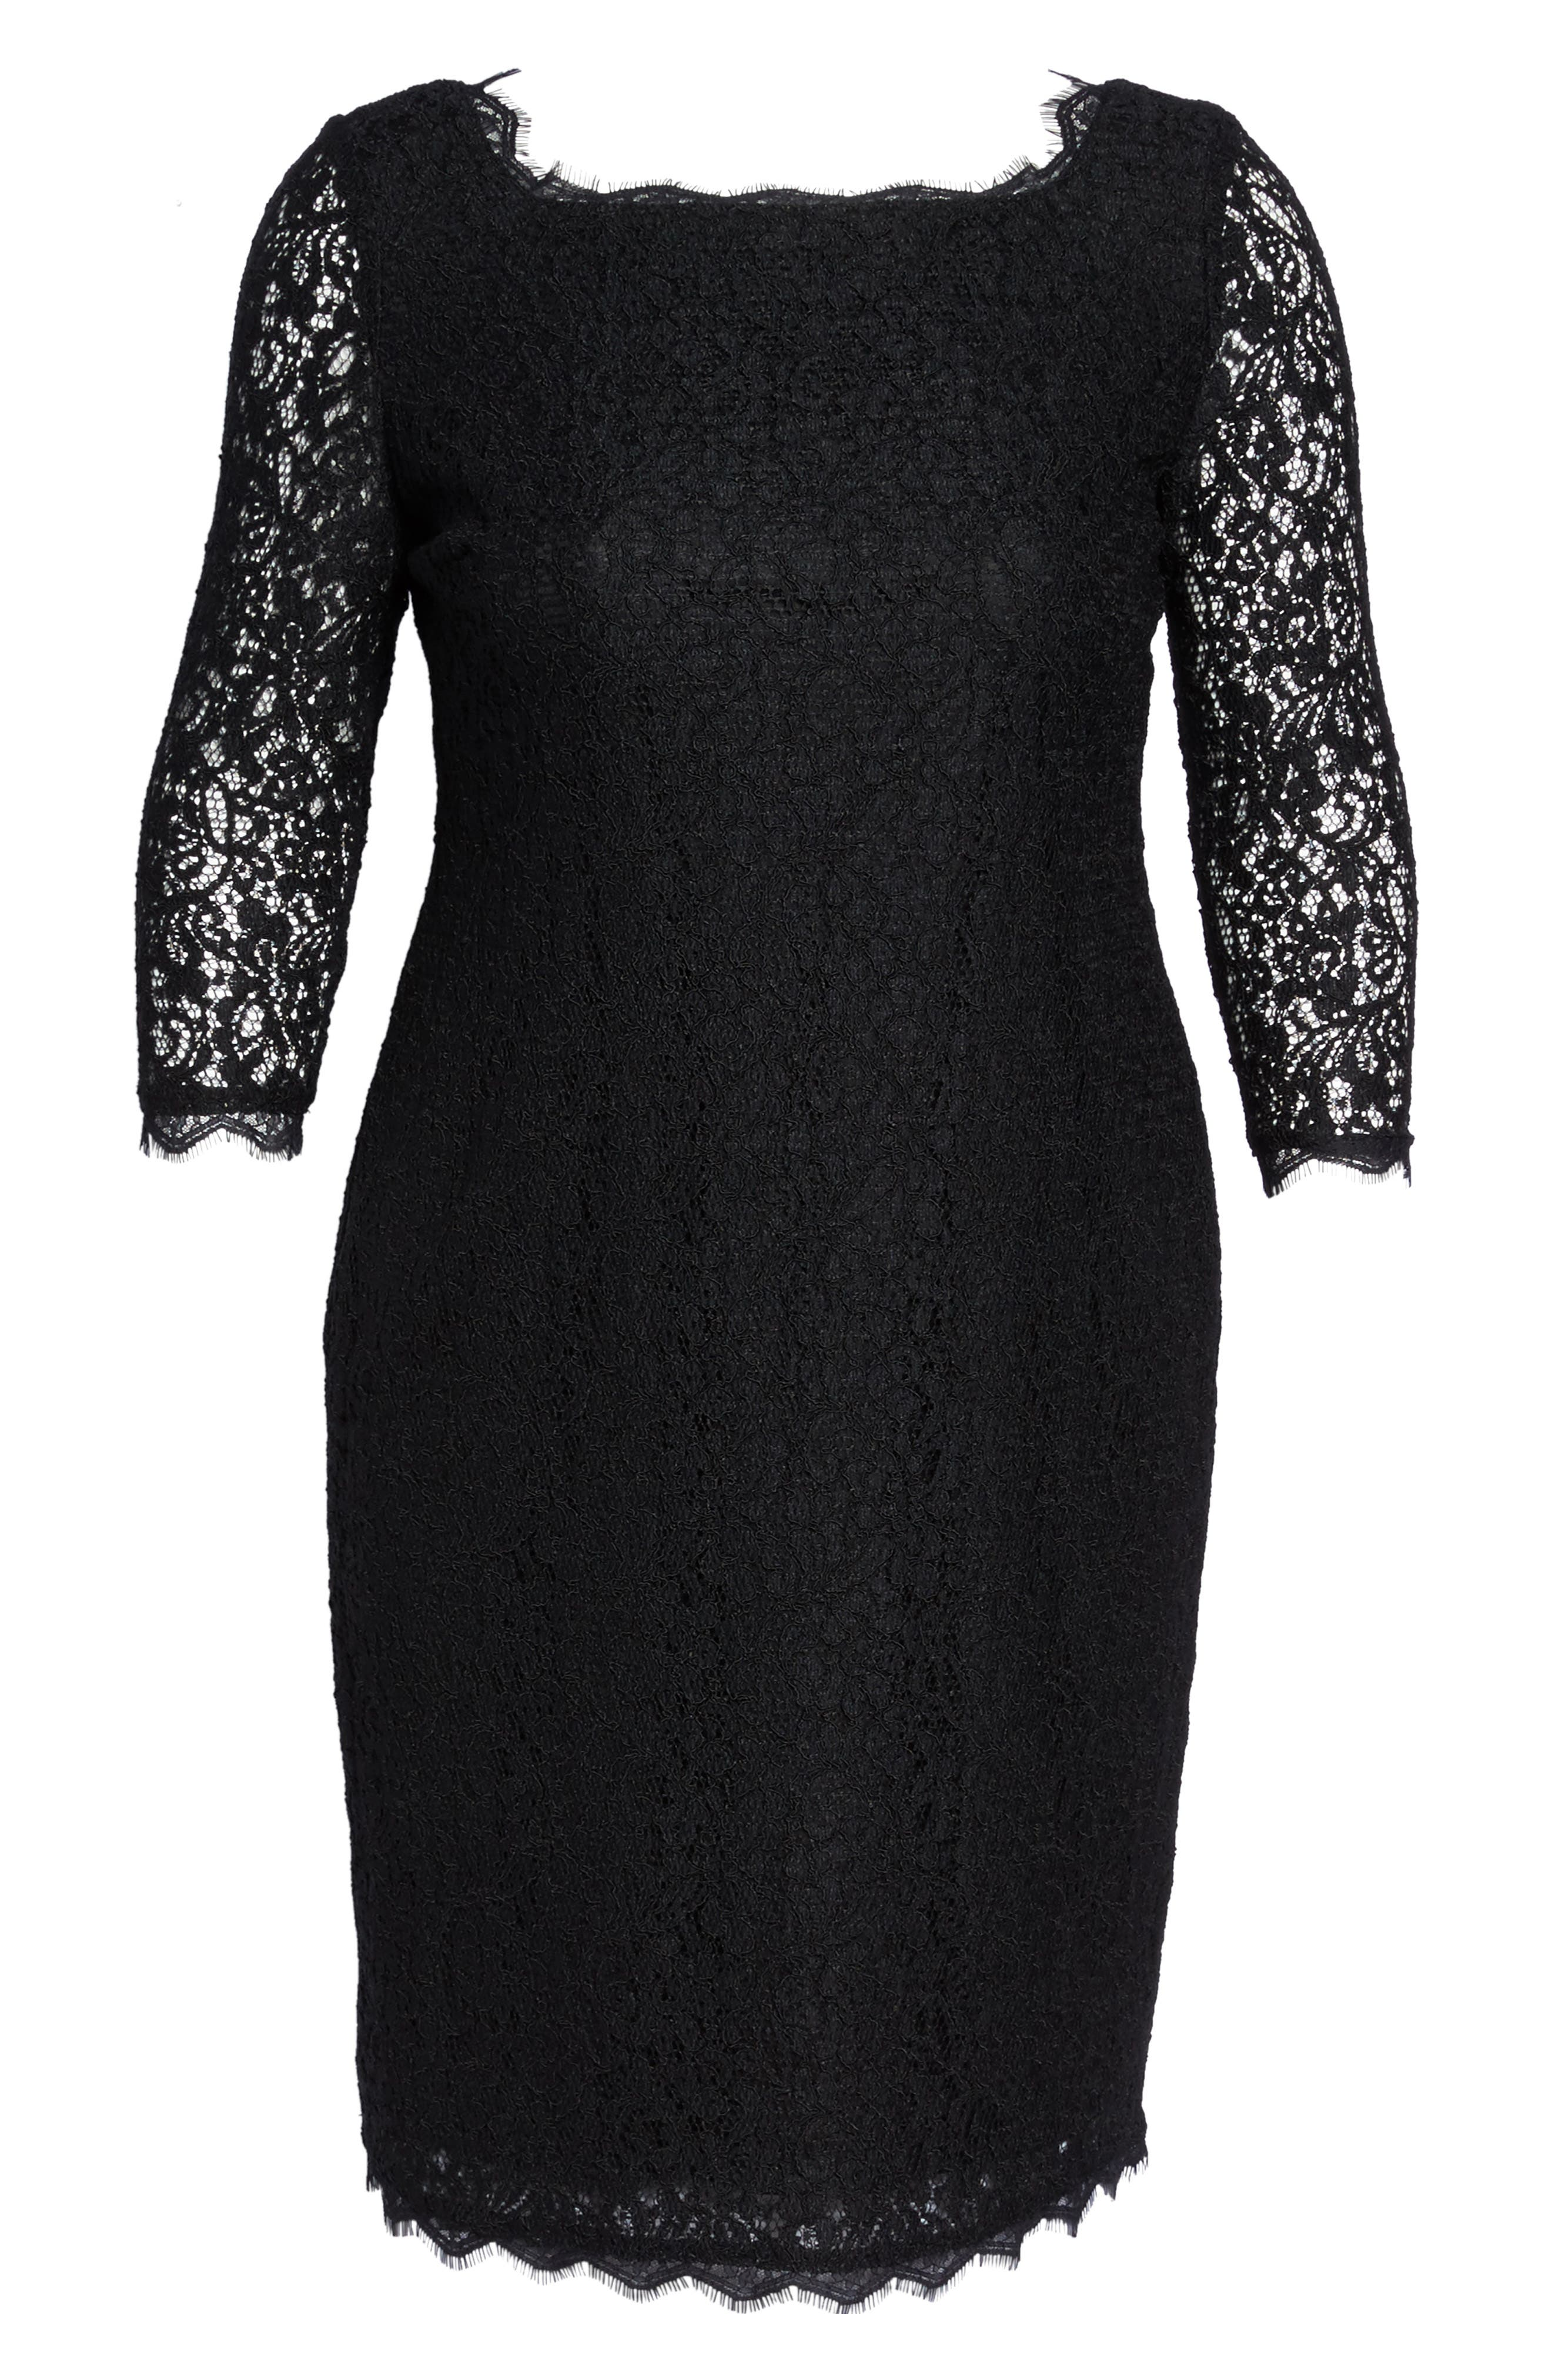 Lace Overlay Sheath Dress,                             Alternate thumbnail 6, color,                             001